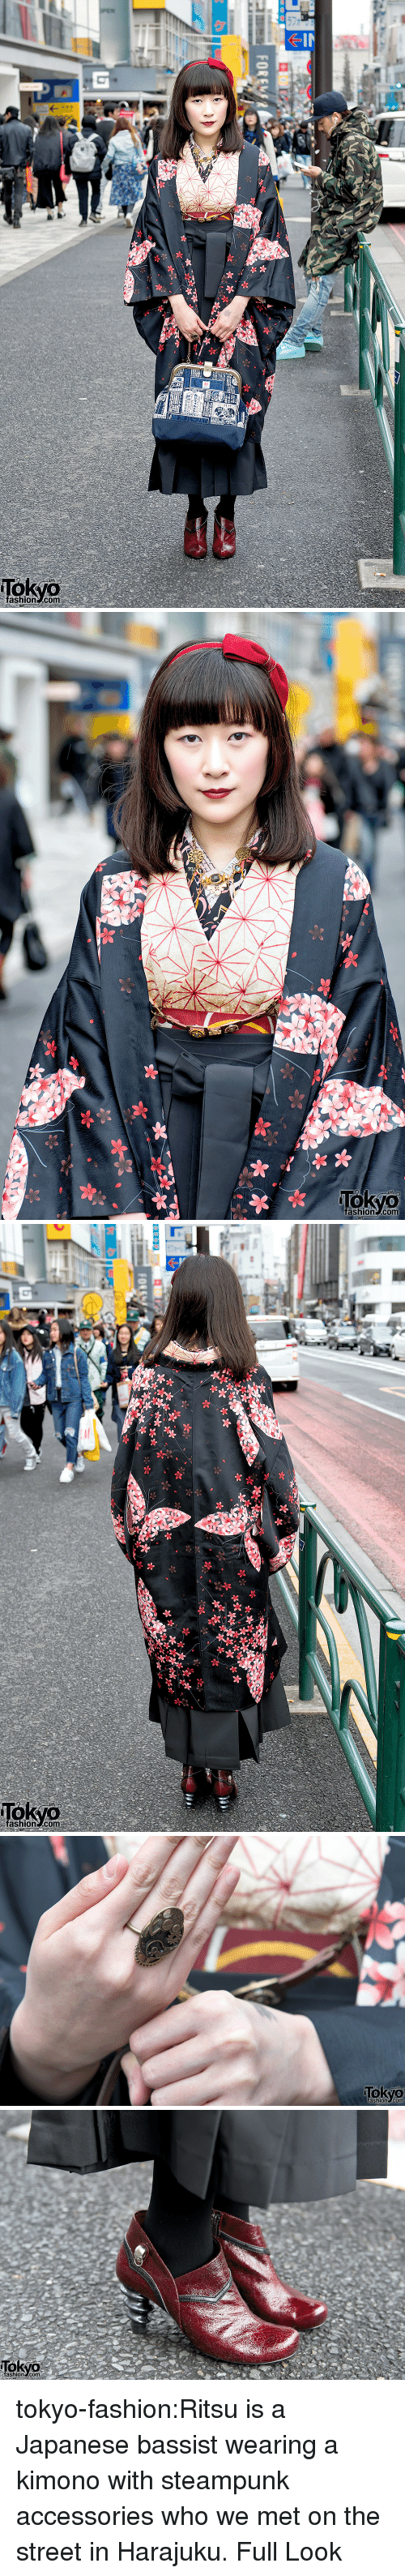 kimono: ashion.com   fashion.com   ashion.com   Tokyo  ashione.com   Tokyo  ashionscomm tokyo-fashion:Ritsu is a Japanese bassist wearing a kimono with steampunk accessories who we met on the street in Harajuku. Full Look